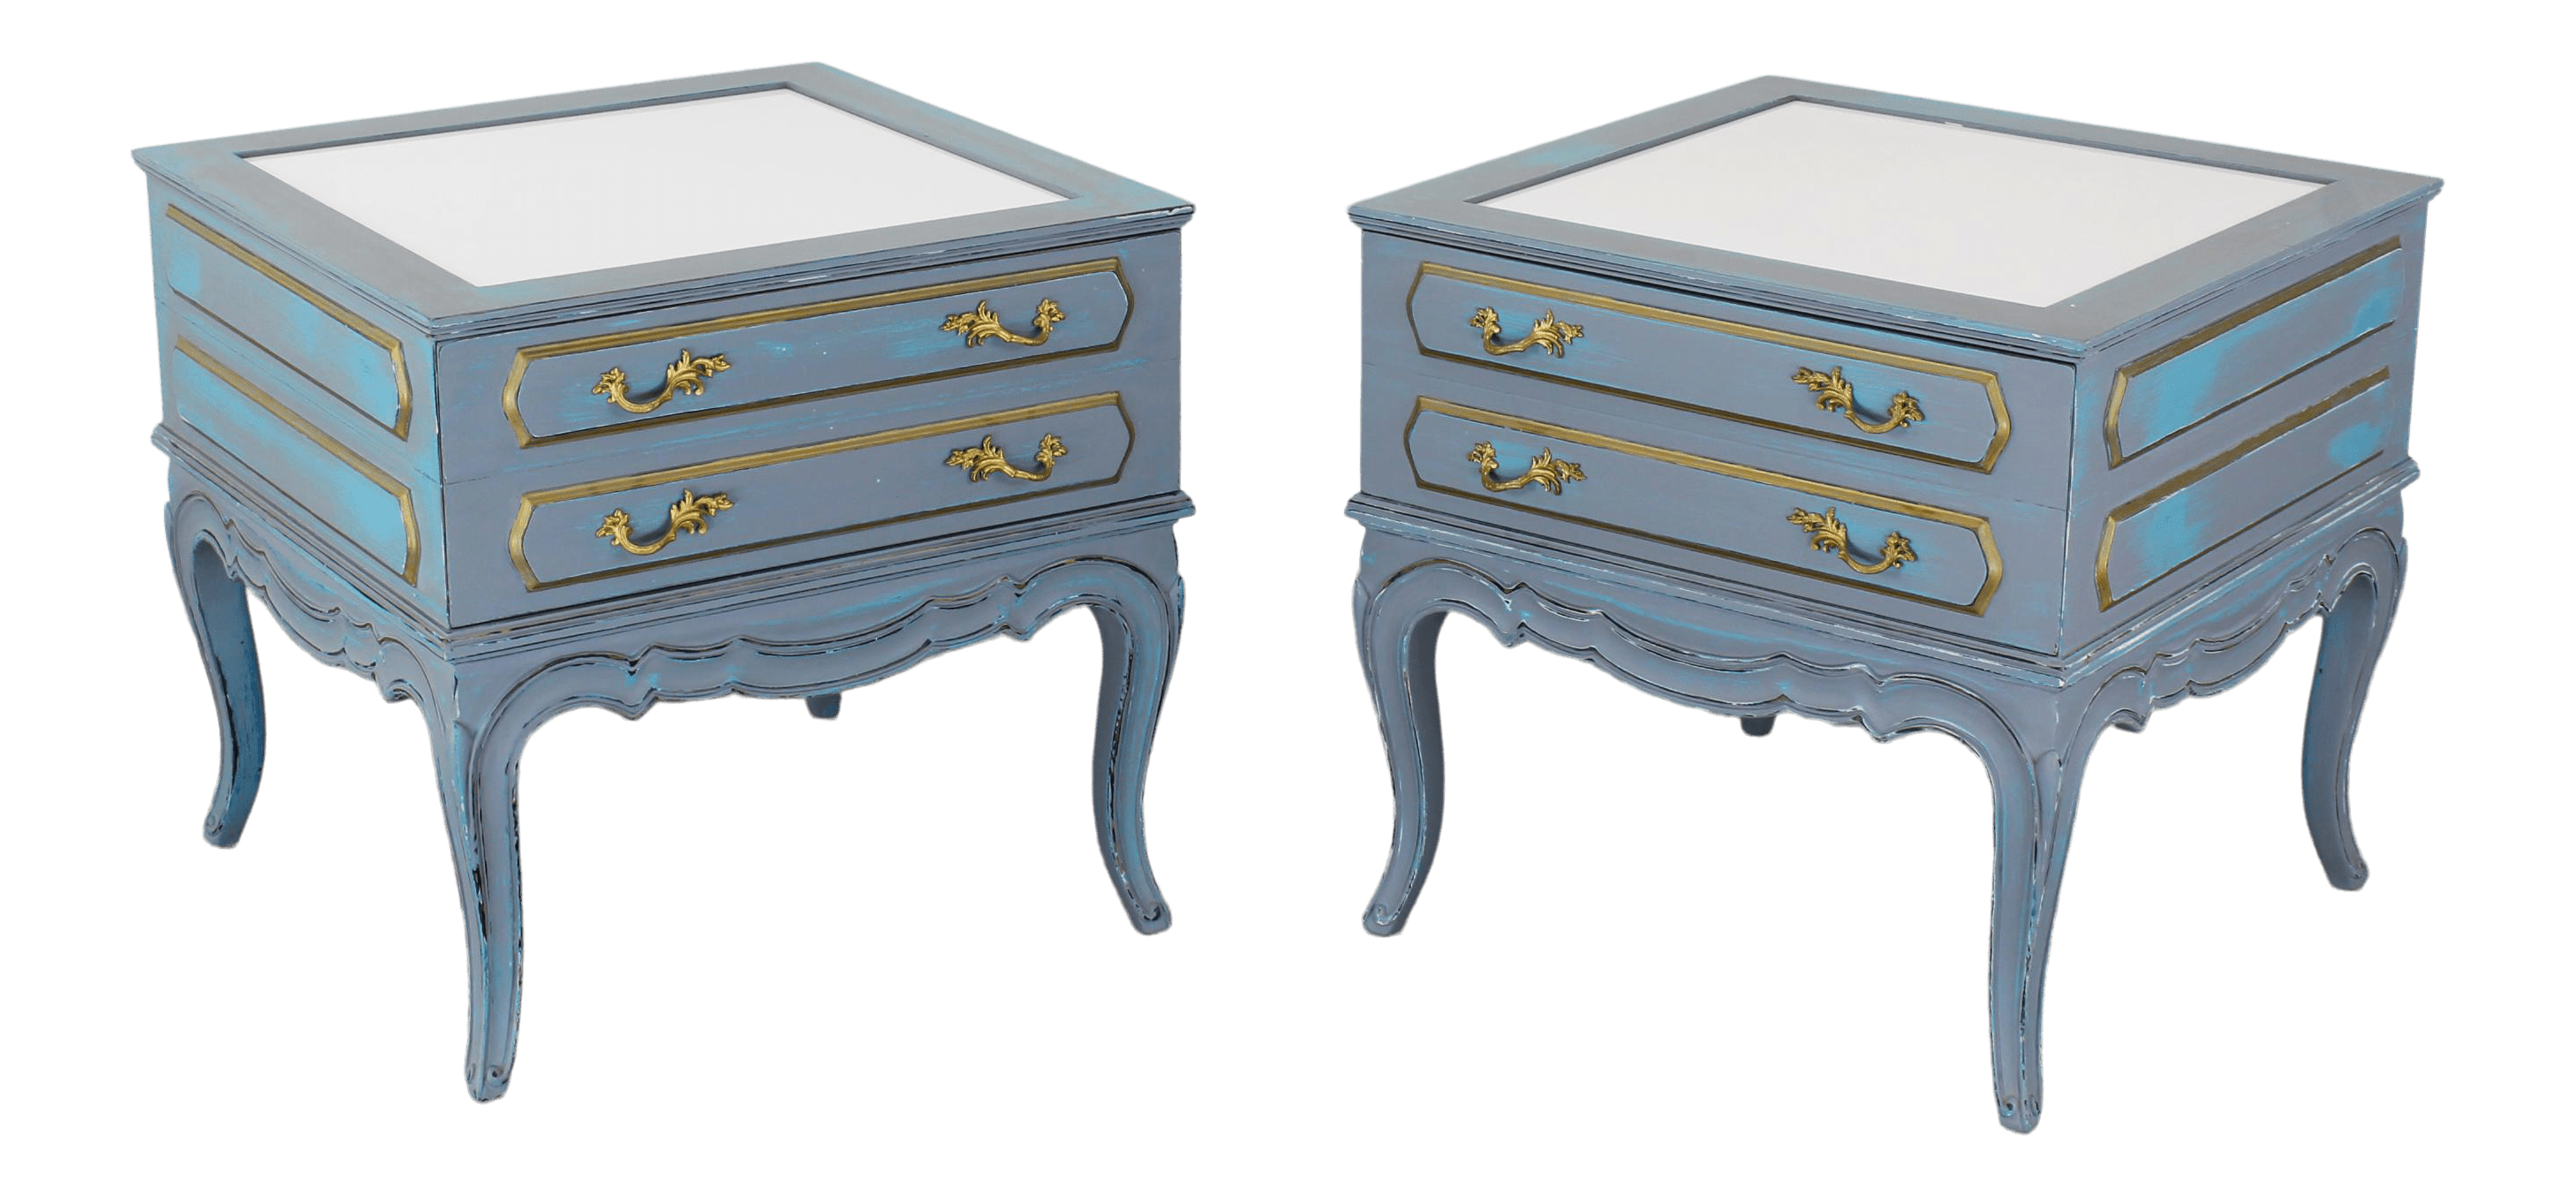 Mid Century French Provincial Nightstands A Pair Vintage Nightstands Gray Nightstands Shabby Chic Nightstand Blue Nightstans